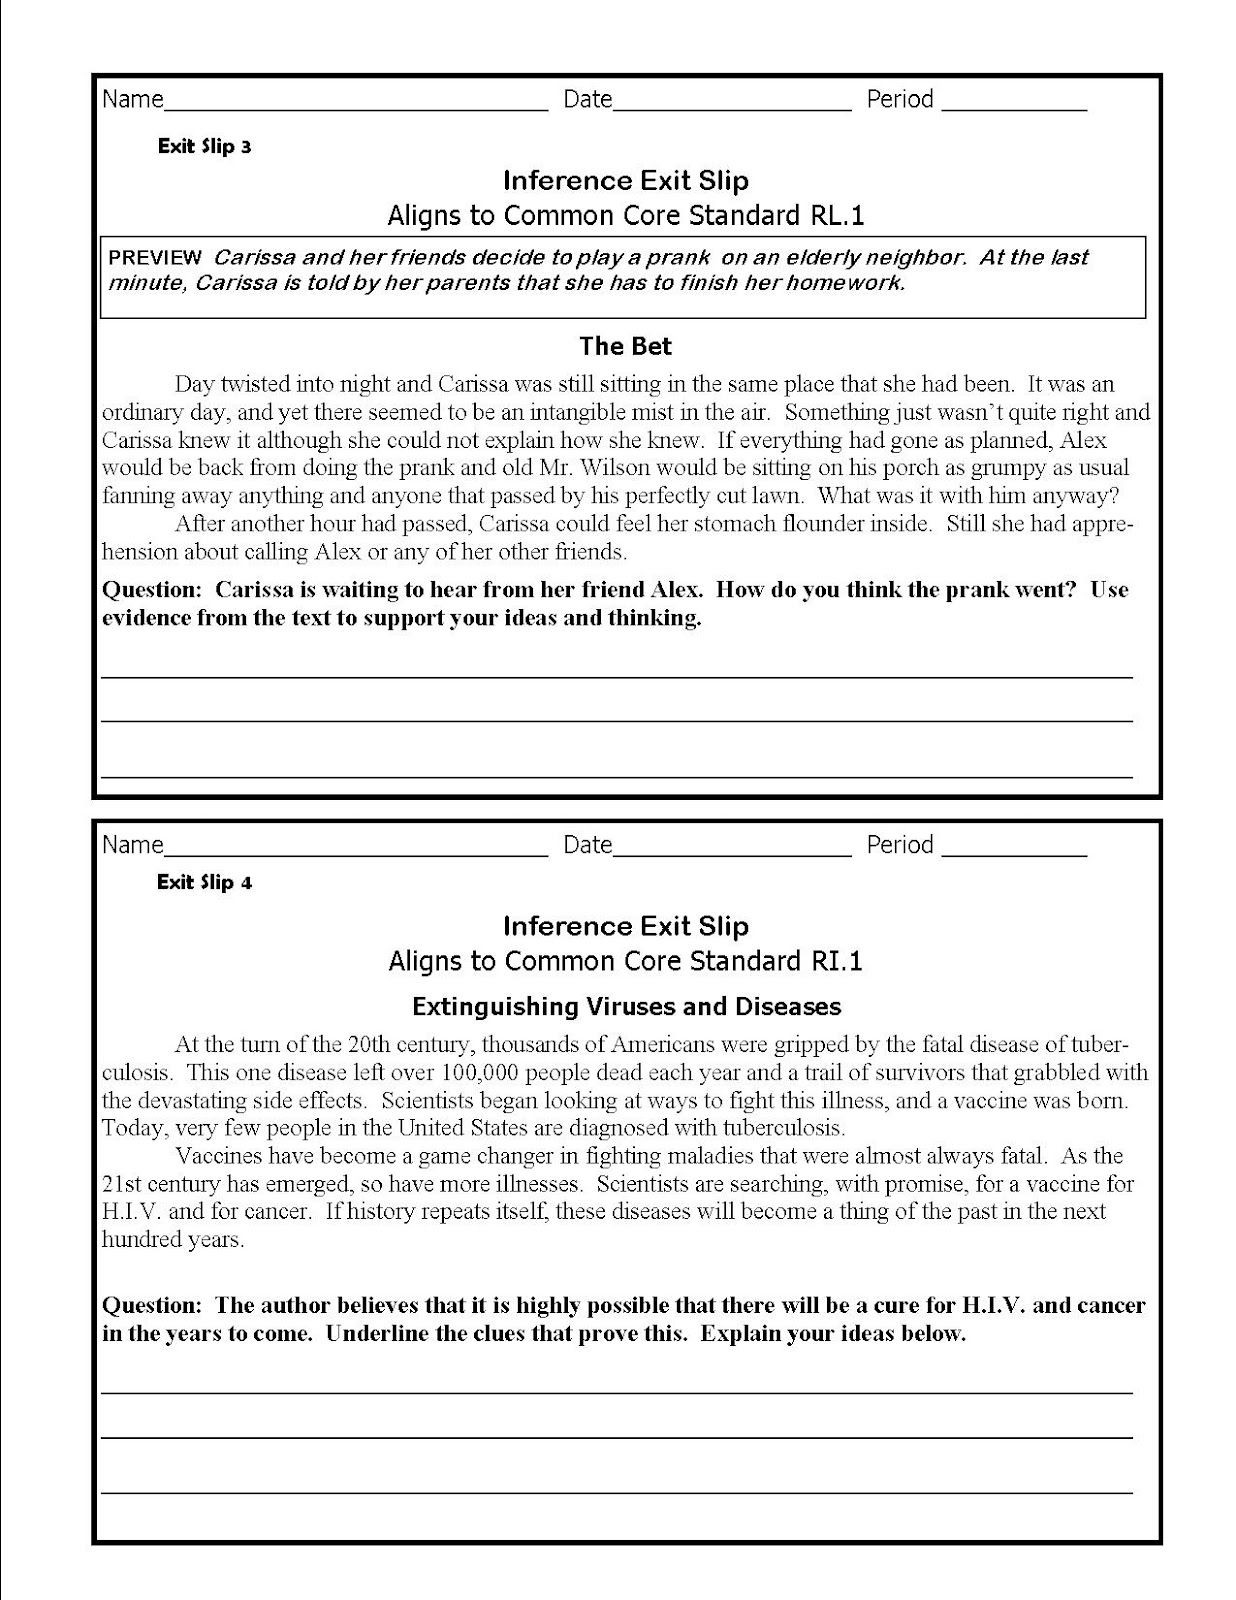 Middle School Inference Worksheets New Inferences Worksheet High School